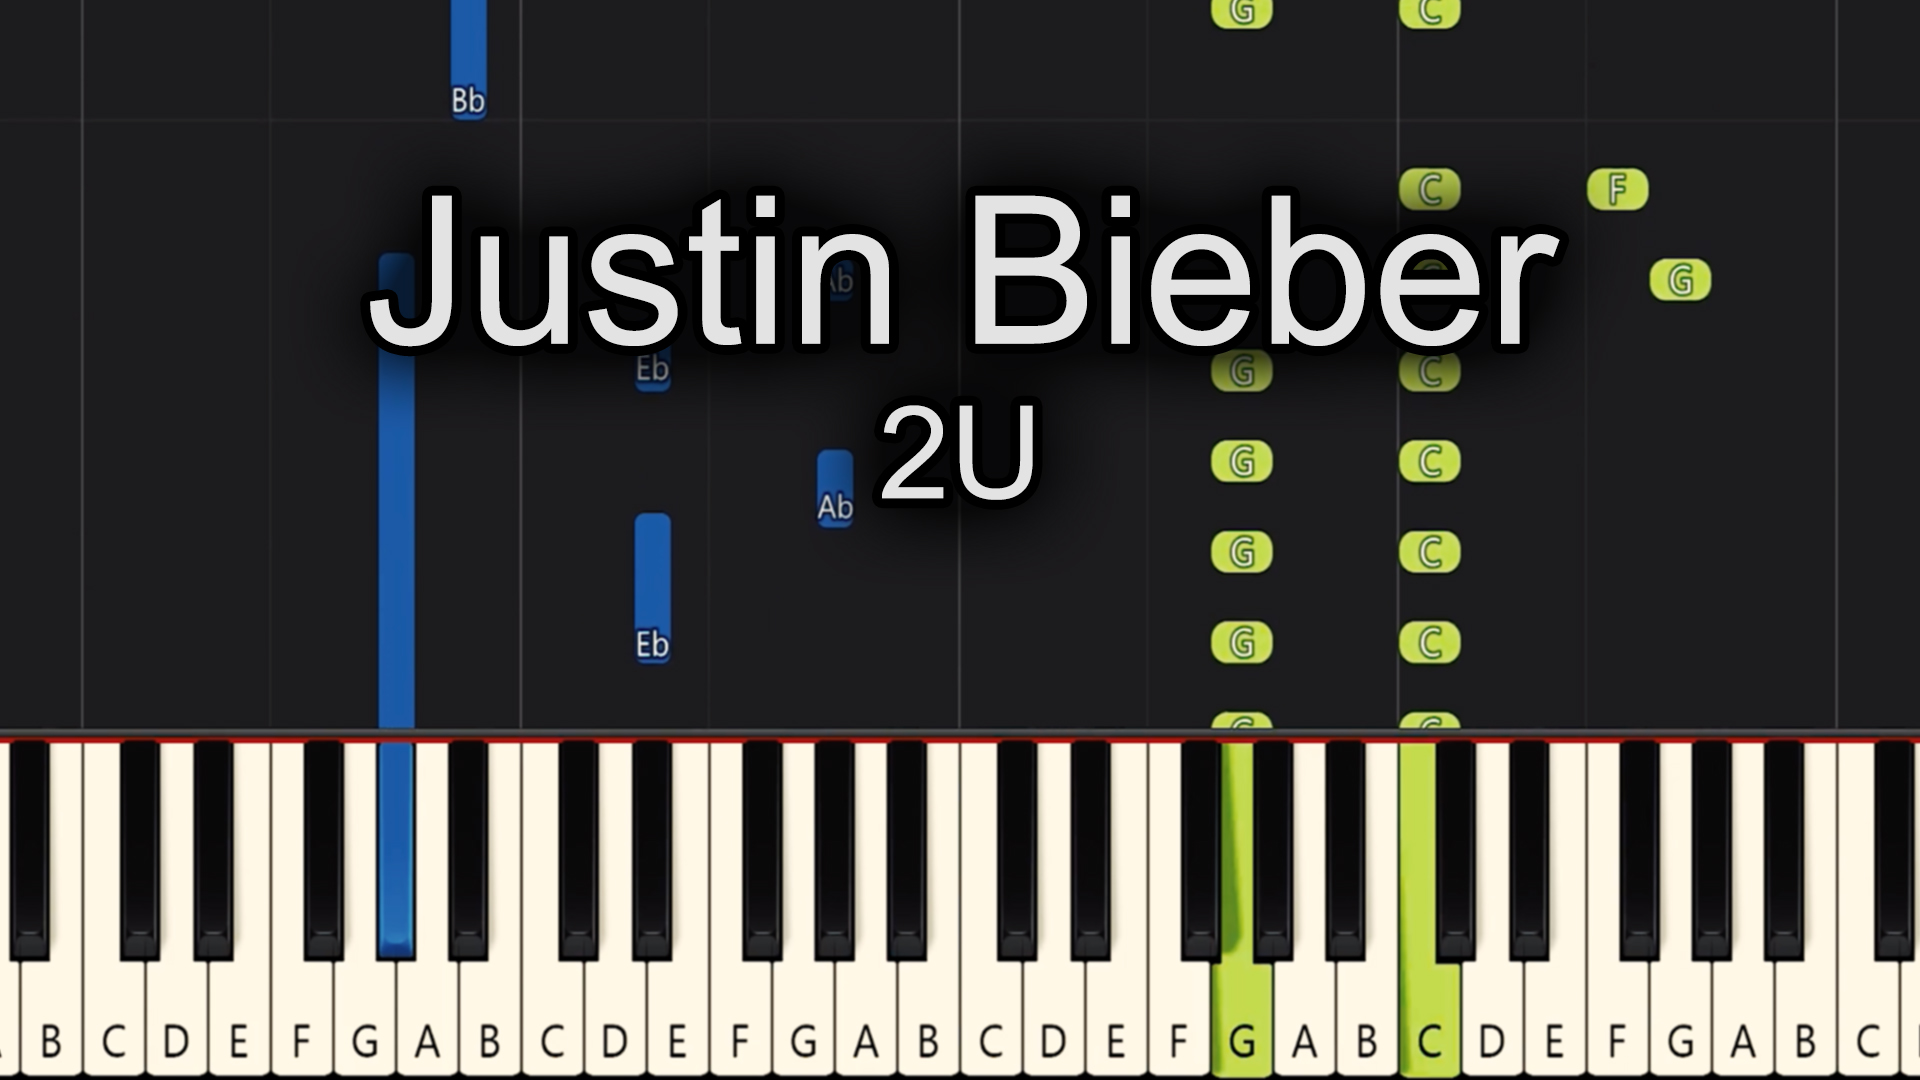 Justin Bieber – 2U – Advanced